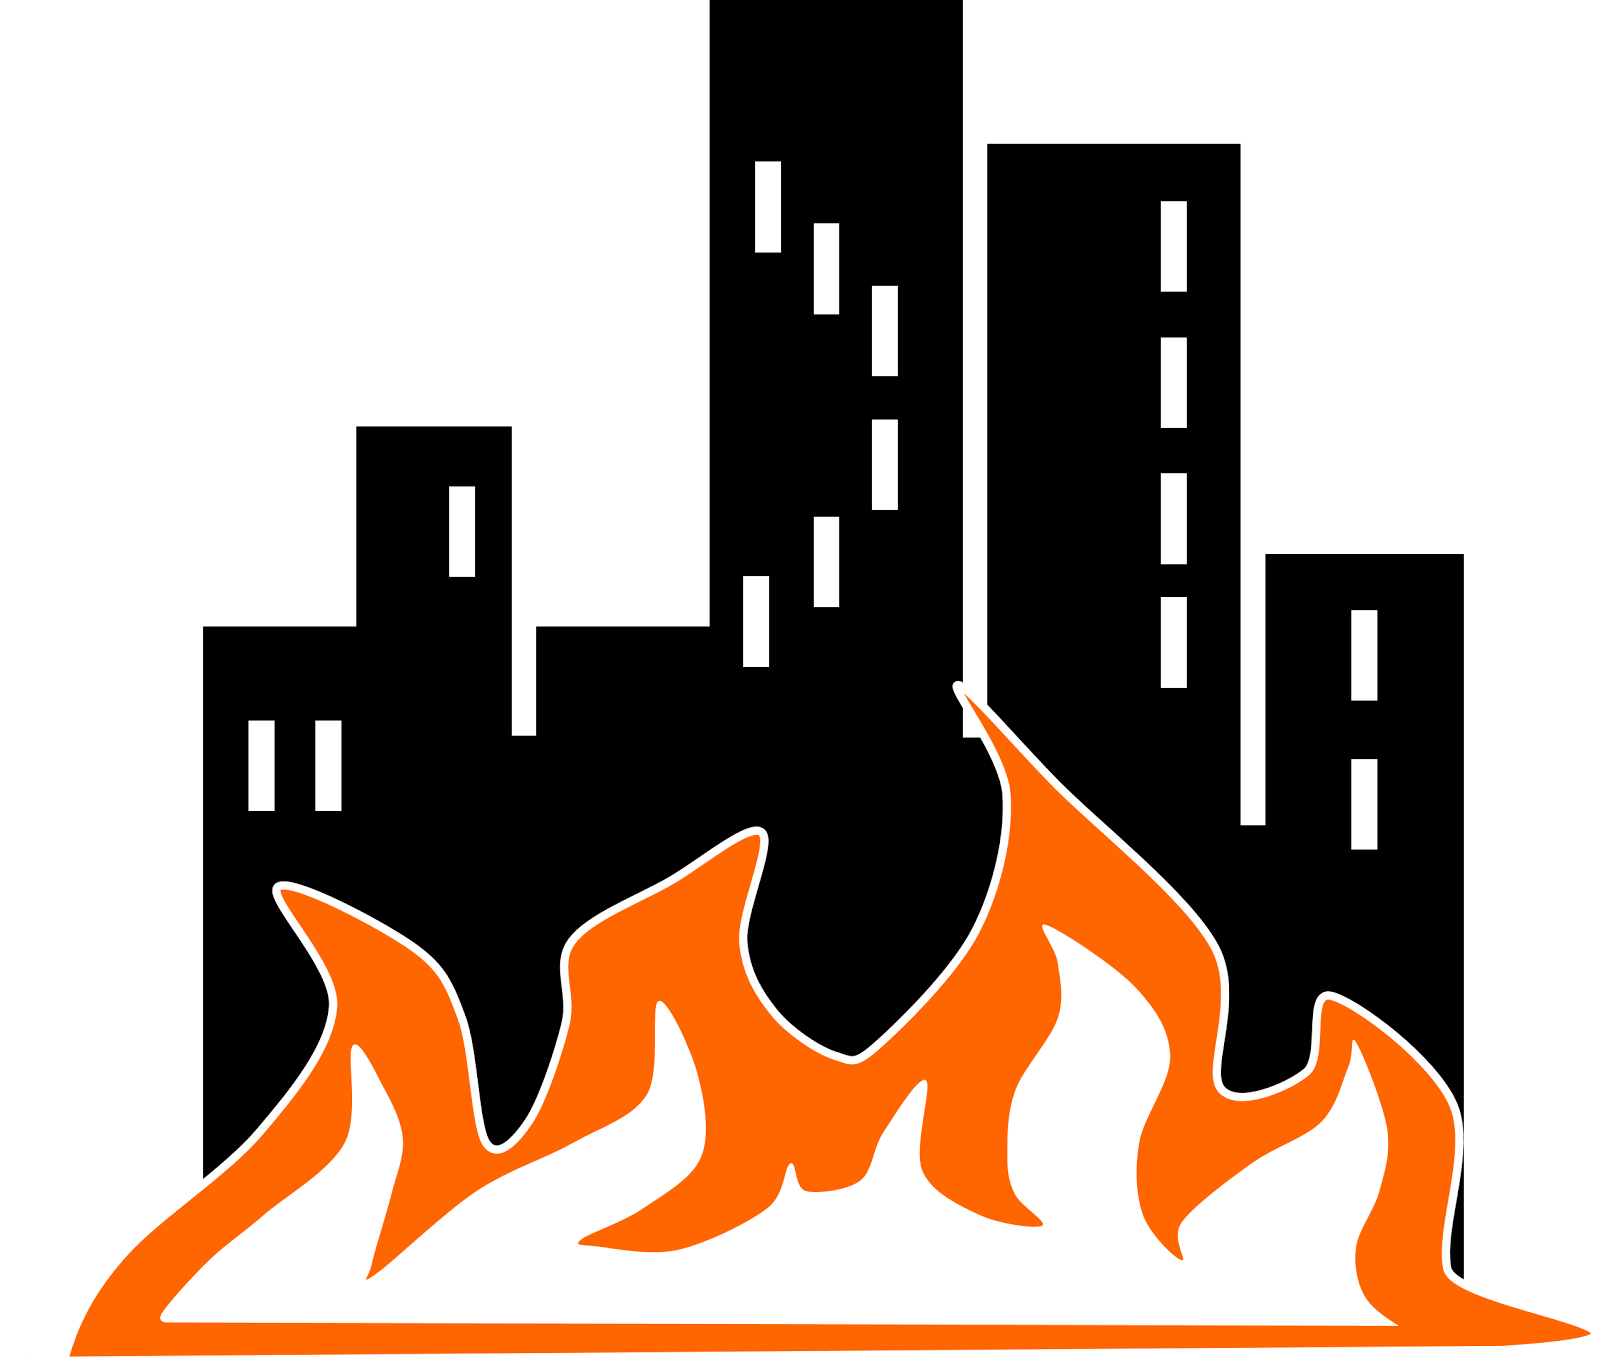 Disaster clipart Zone 2 Disaster Disasters Natural